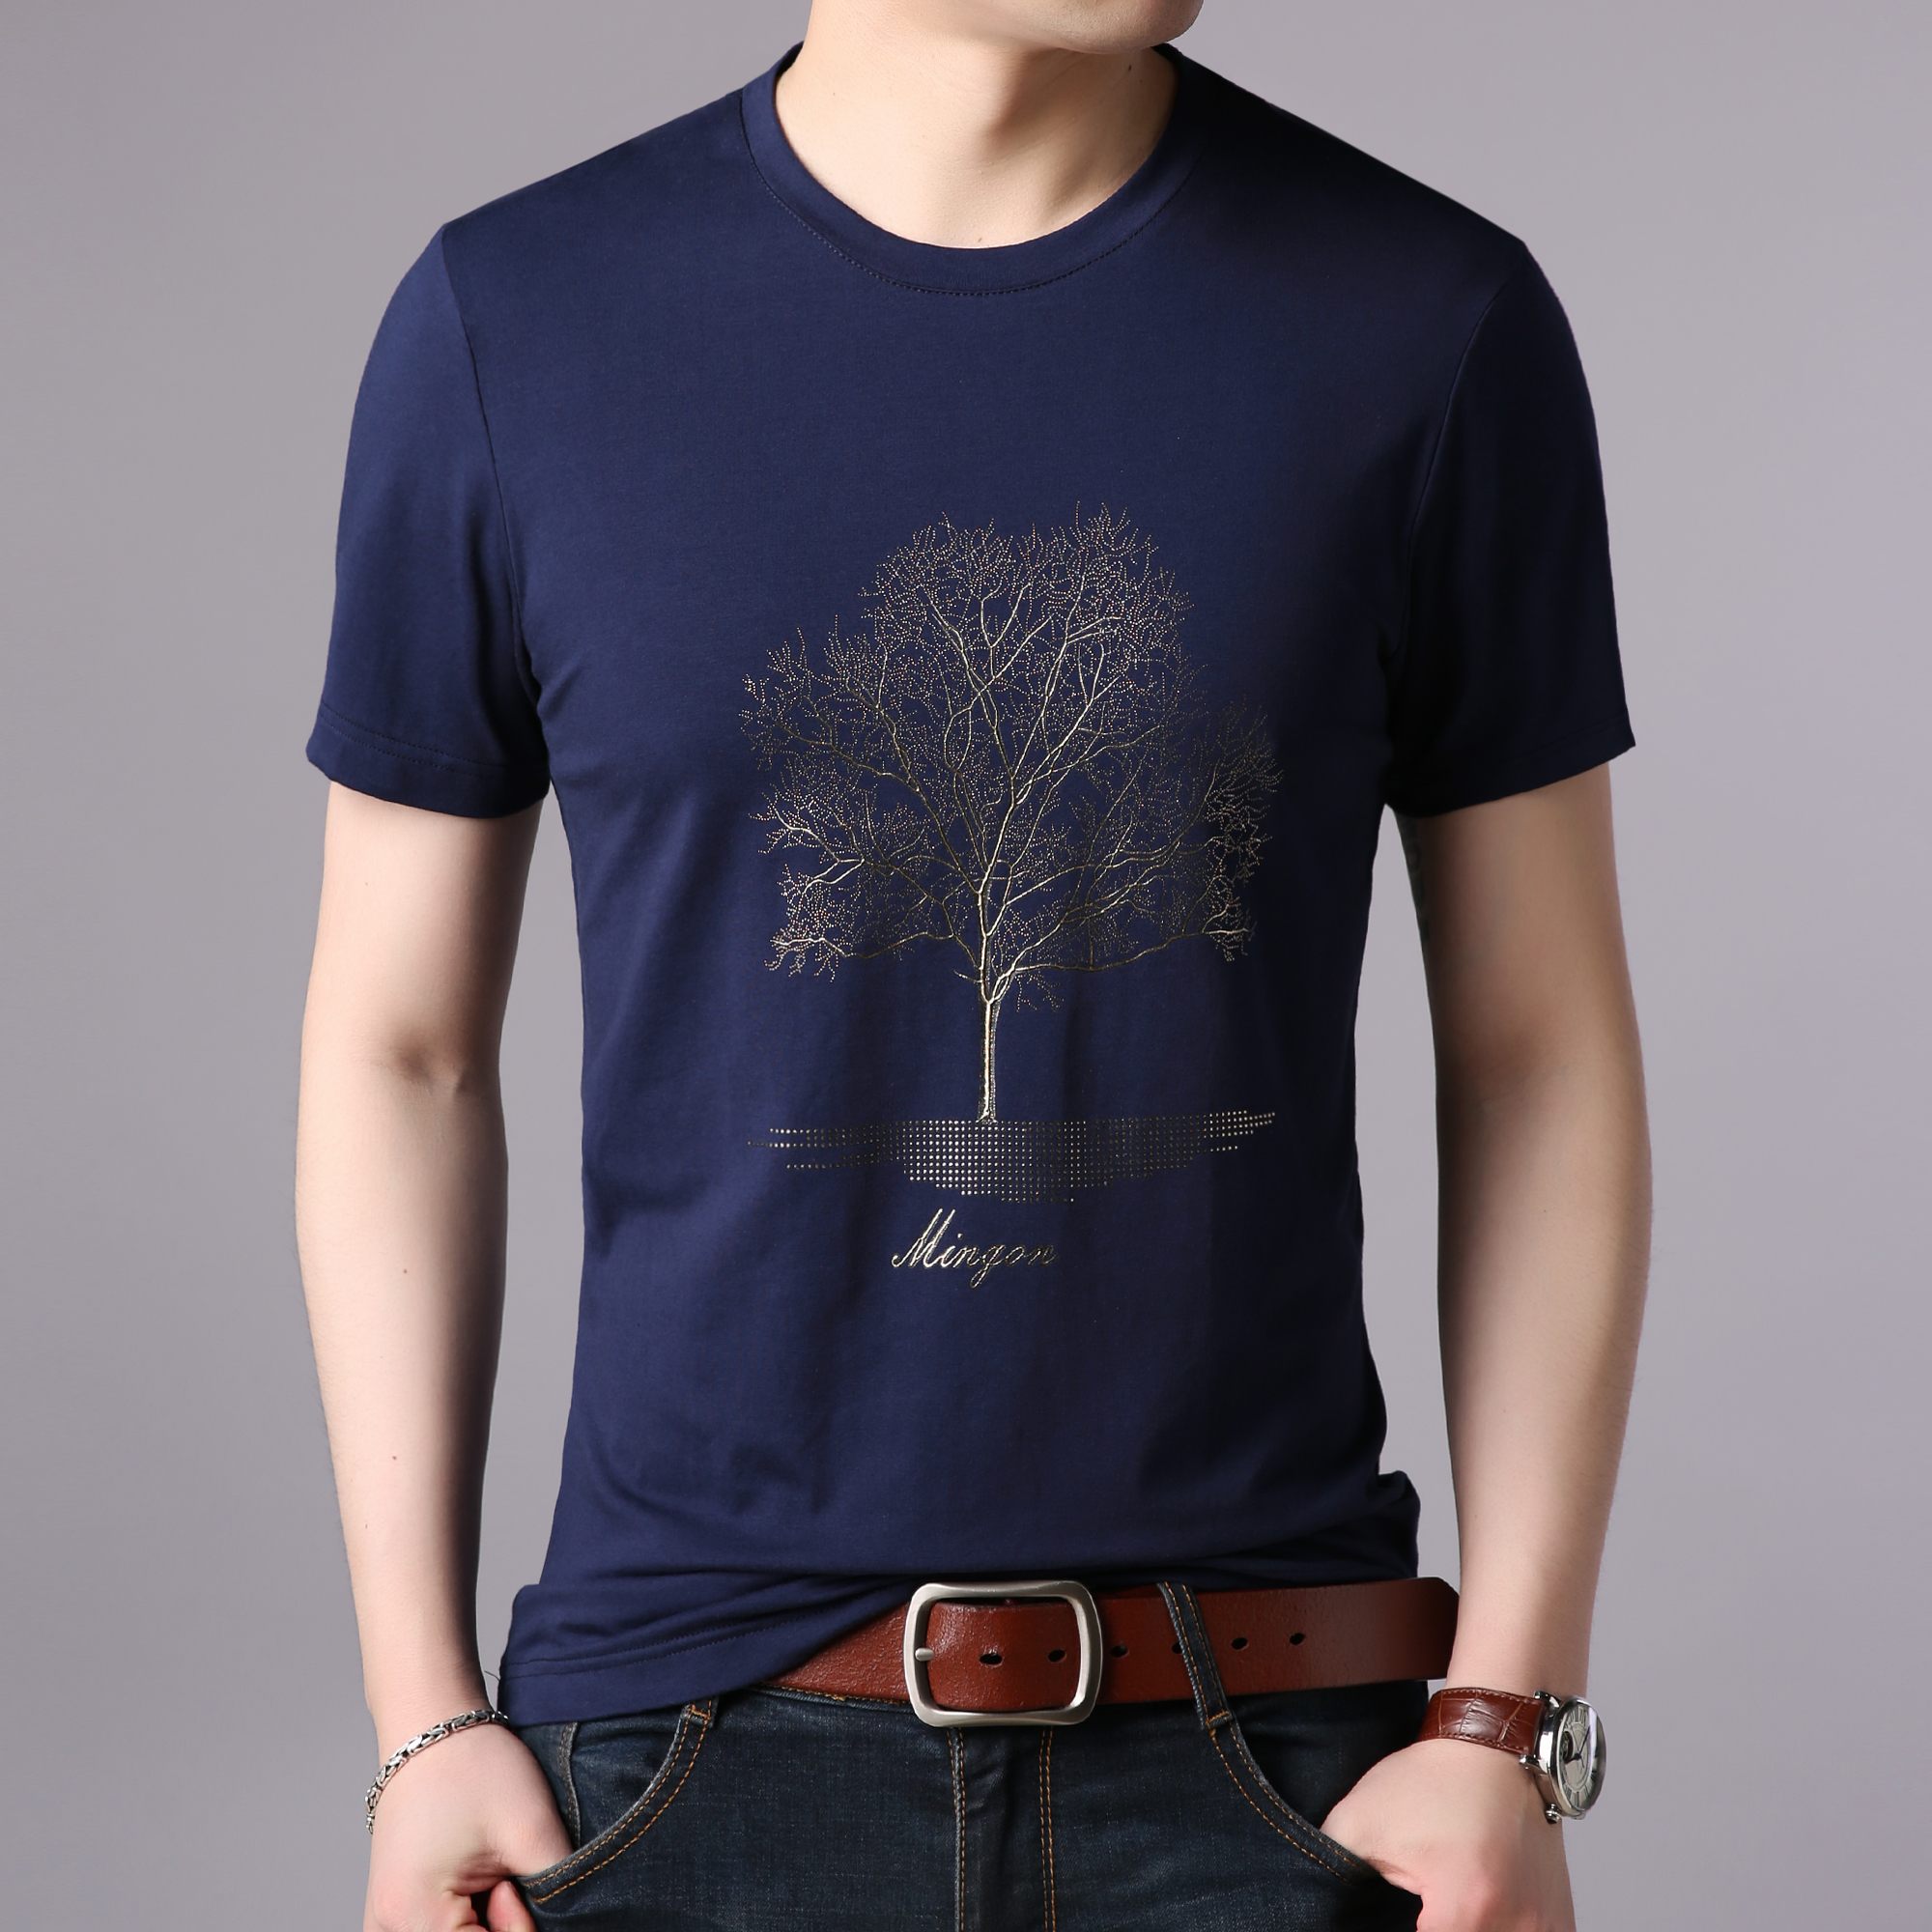 Men's 2020 summer new embroidered tree t-shirt men's short sleeve printed cotton casual top comfortable bottom coat